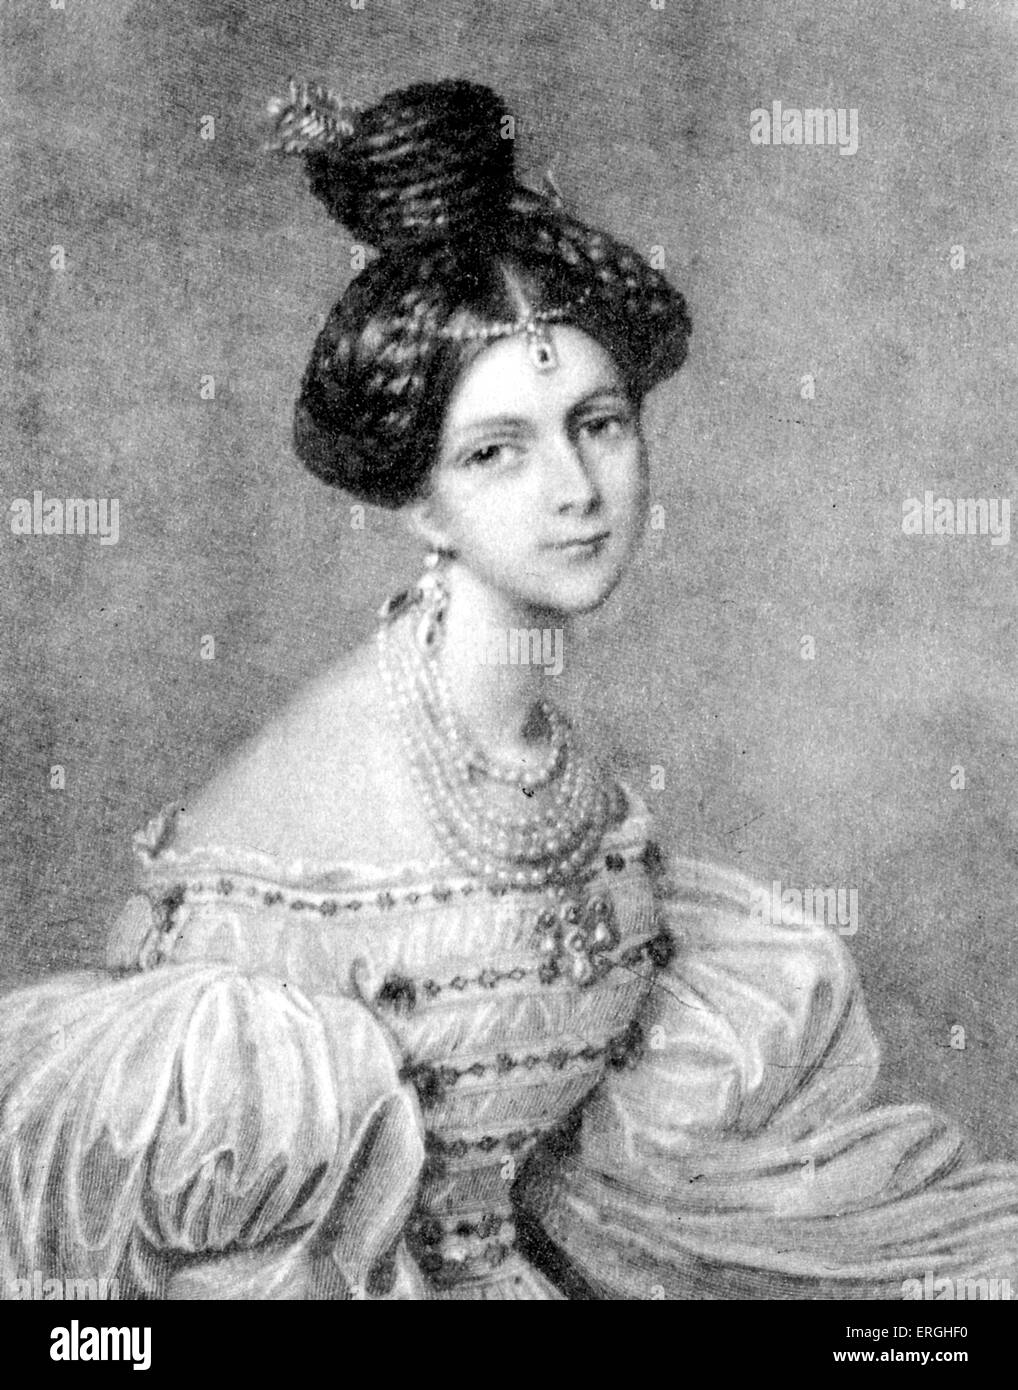 Eliza Radziwill - Polish-Lithuanian aristocrat, 1803 - 1834. Chopin connection. - Stock Image